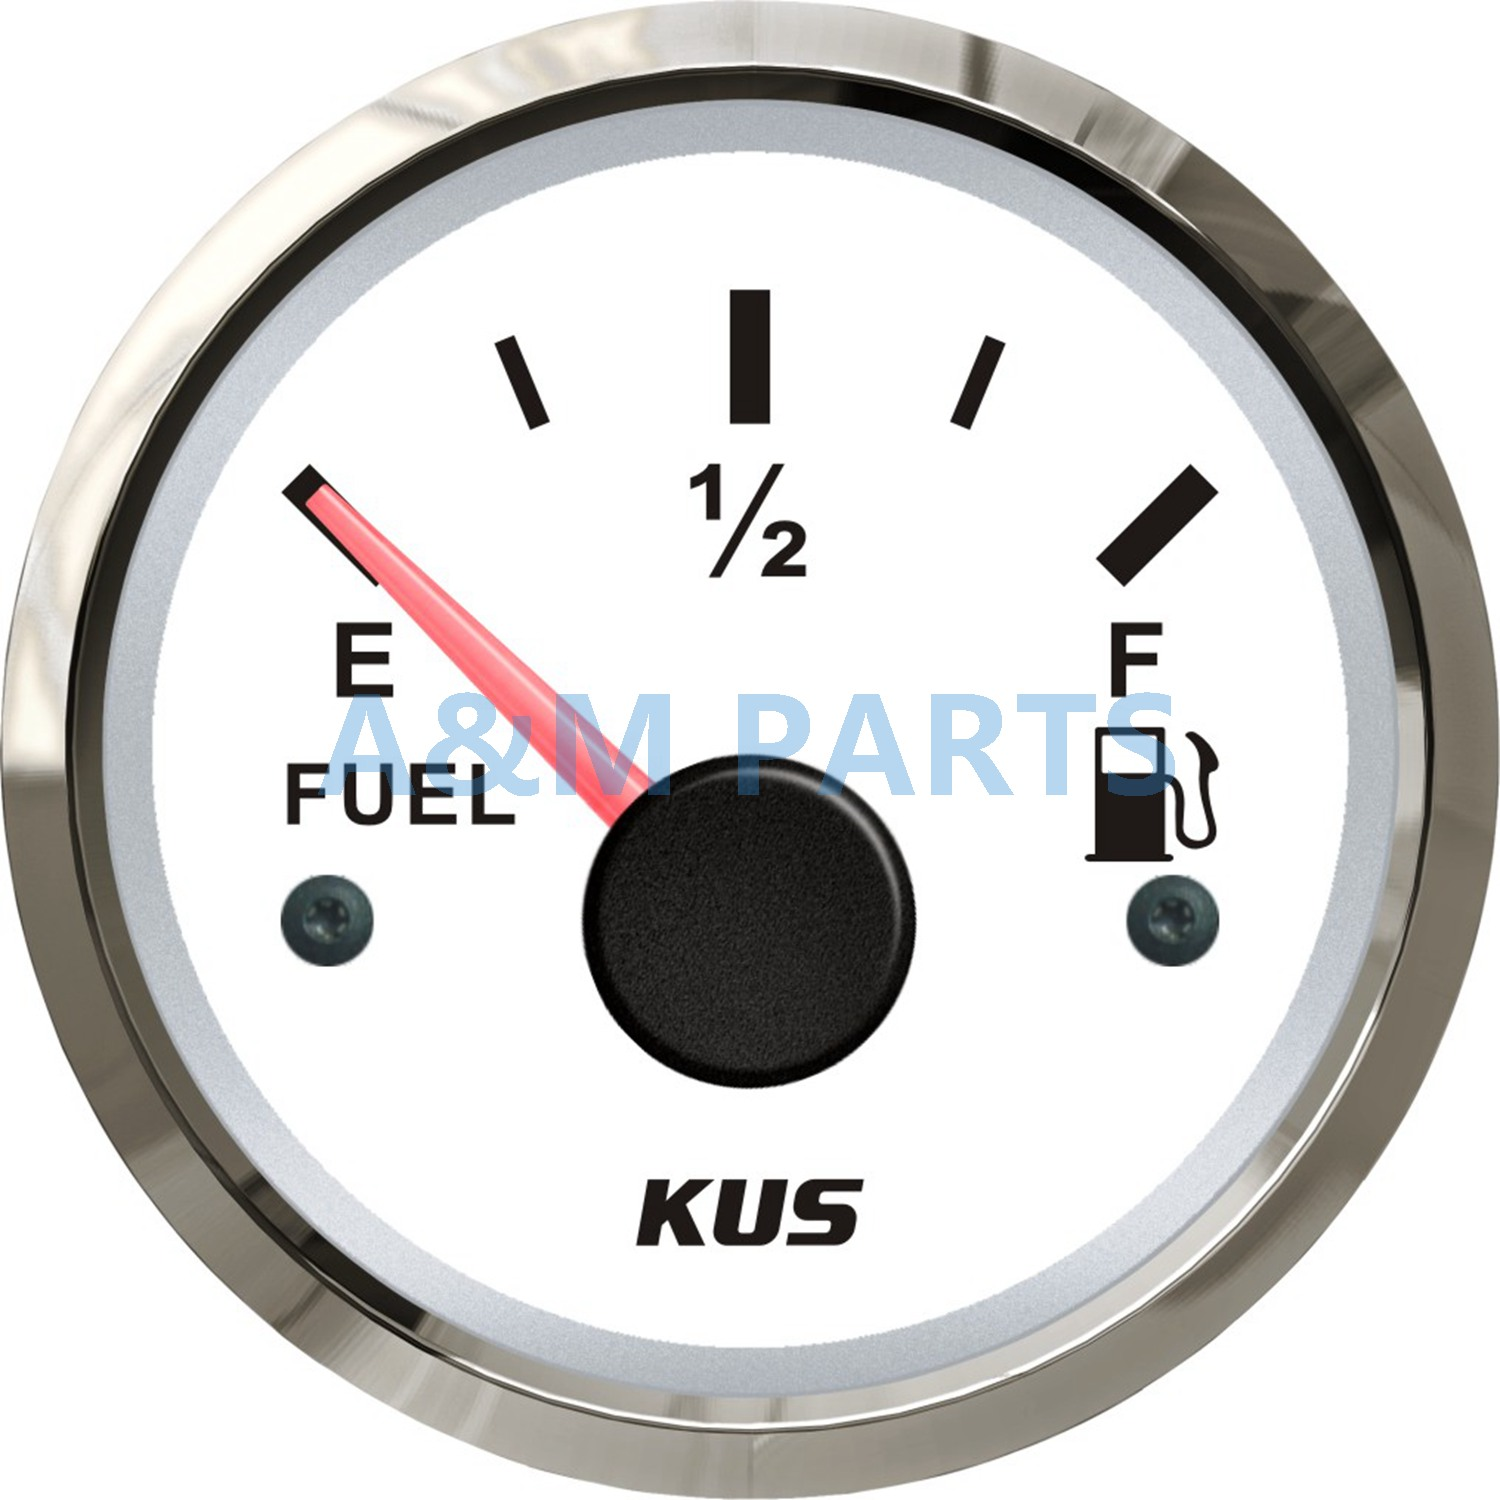 KUS Marine Fuel Tank Gauge Boat Oil Tank Level Indicator 12/24V 52mm 0-190ohms